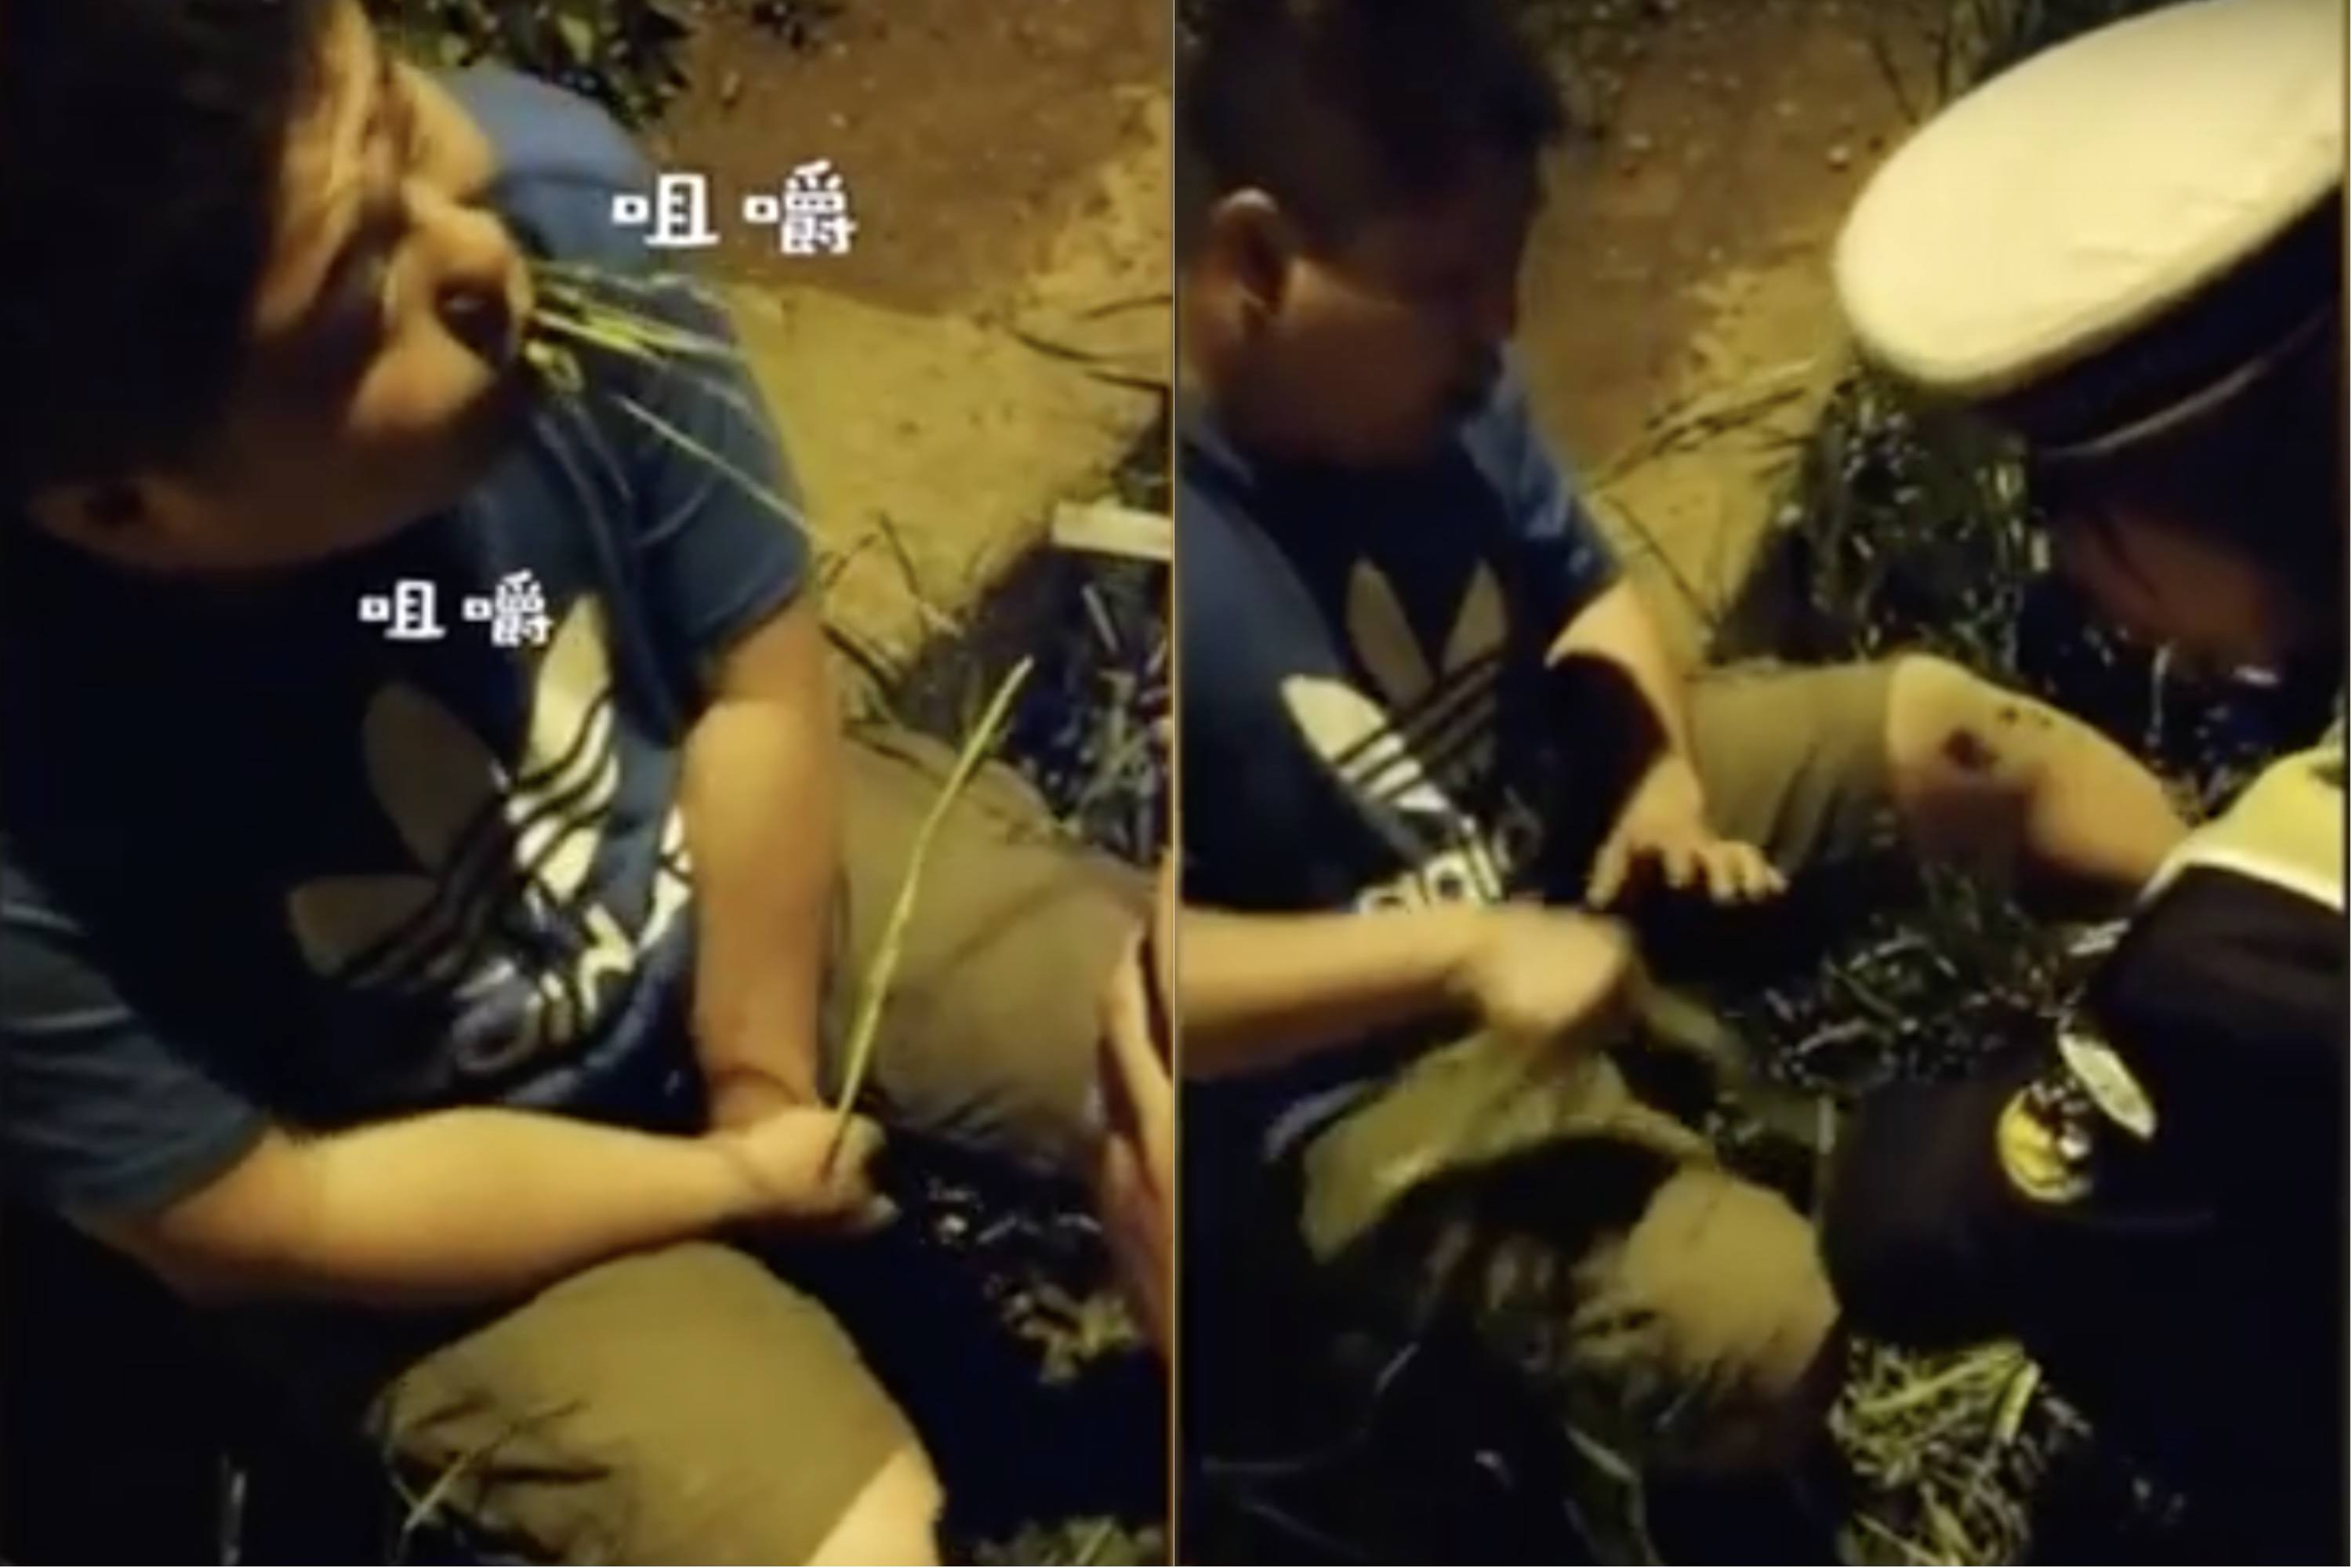 Drunk Chinese Driver Tries to Escape Breathalizer by Eating Grass, Fails Miserably